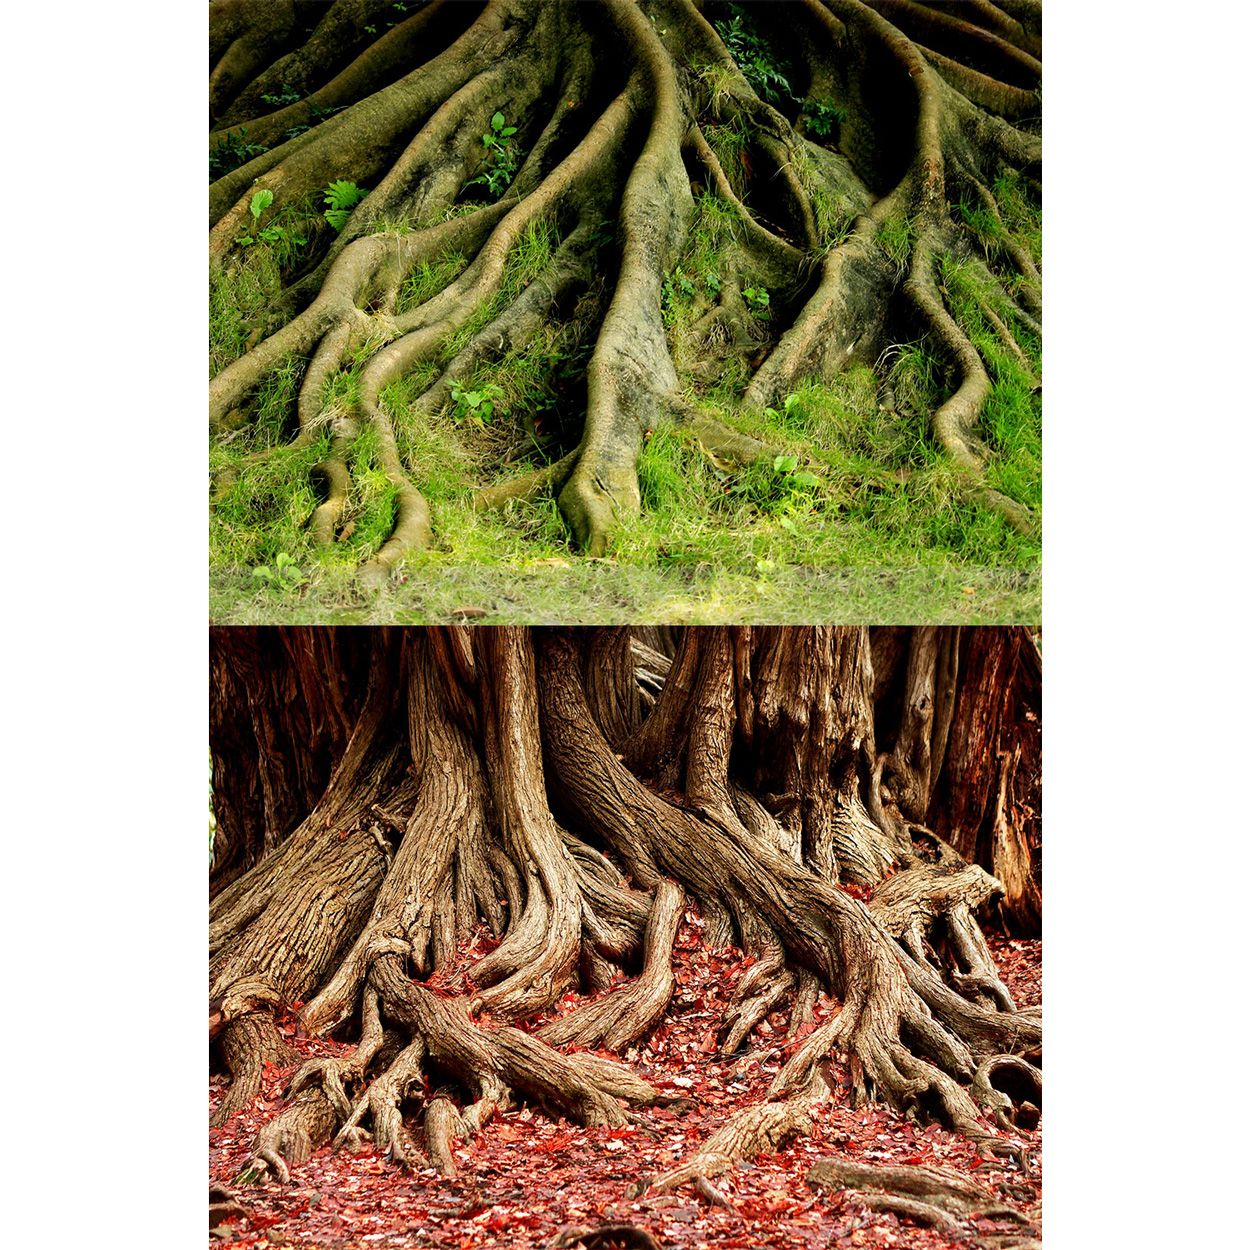 Underwater Treasures Amazon Root/Grassy Root Reversible Background - 20 inch (Sold by the Foot)